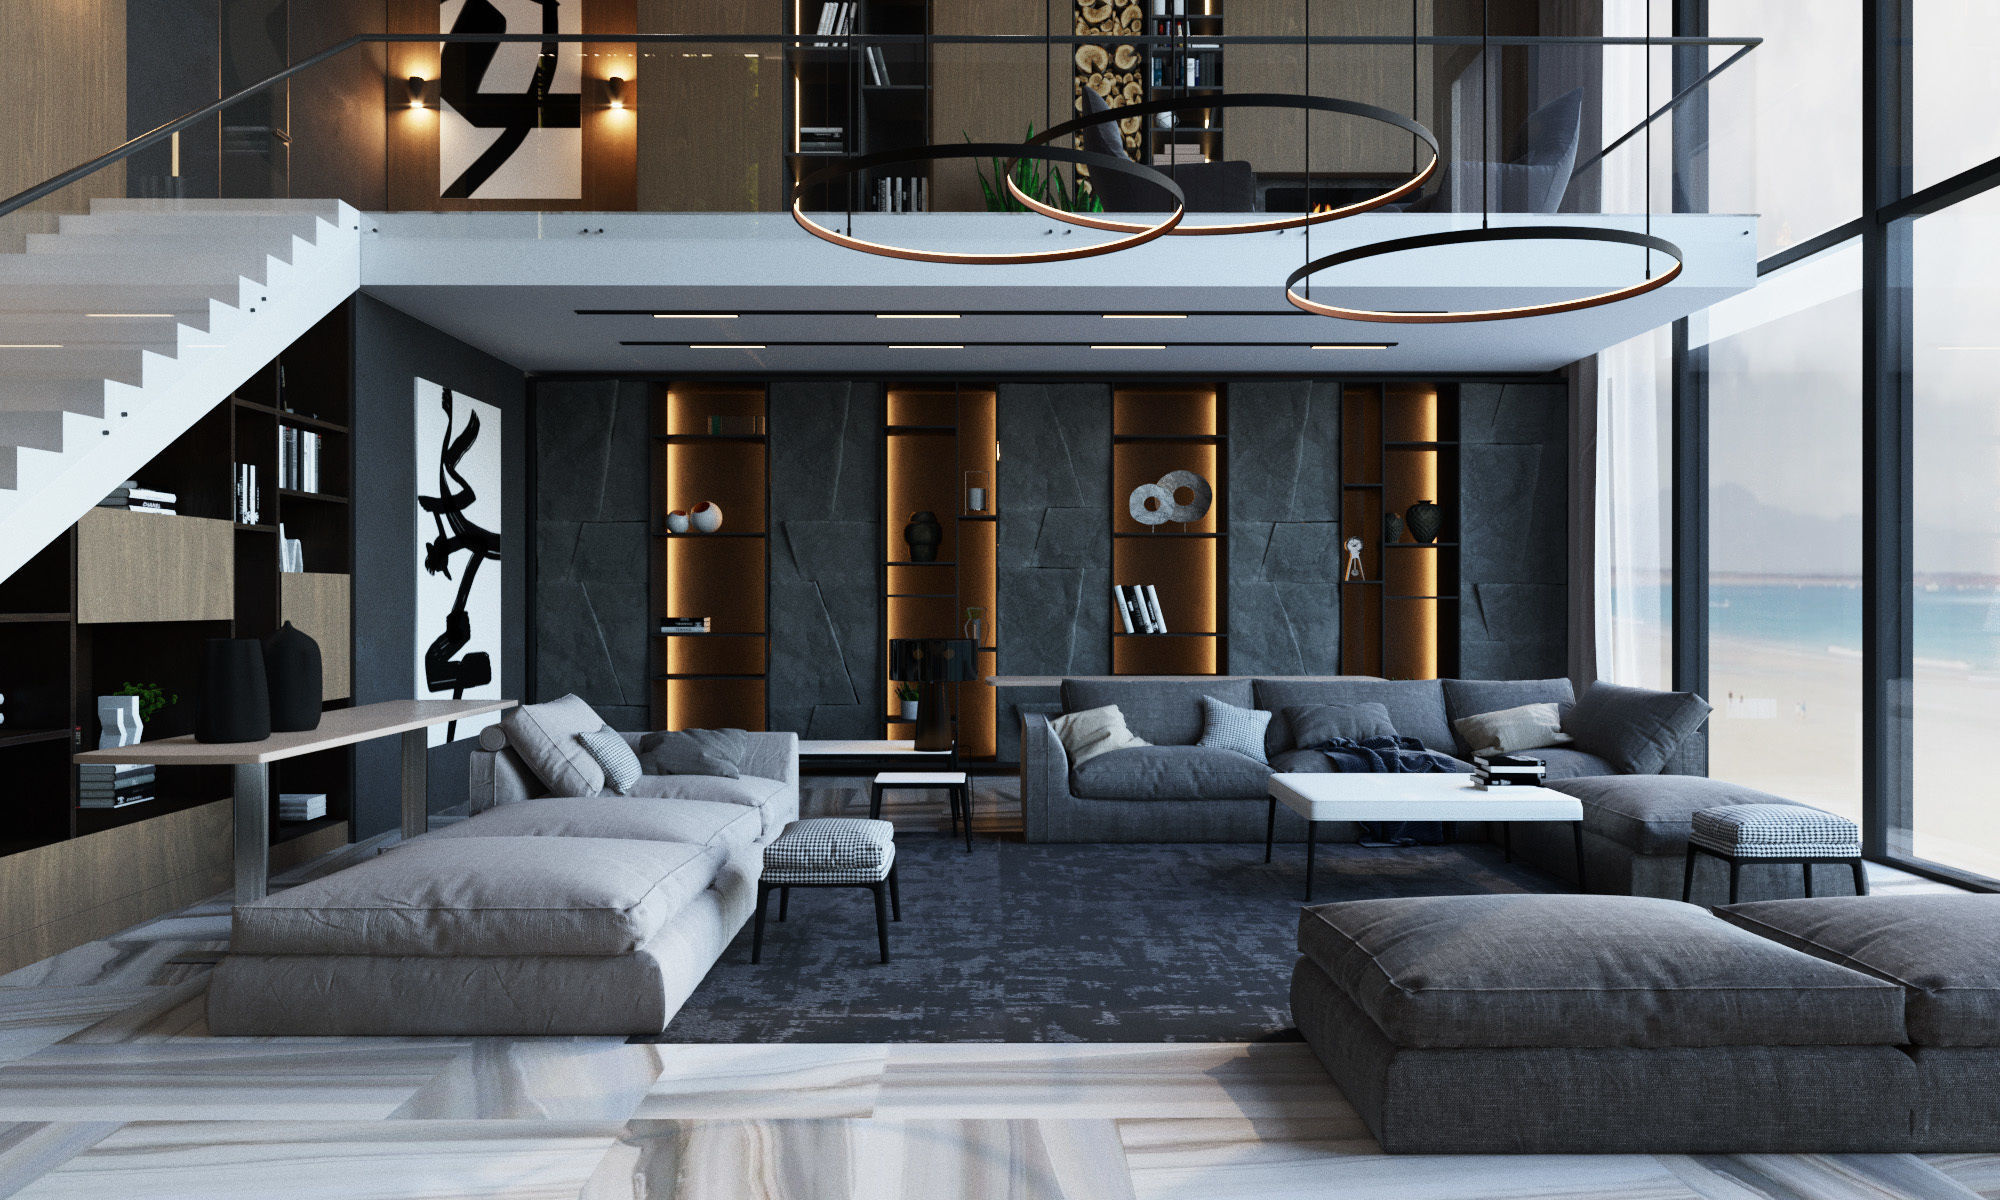 Living room in a modern style